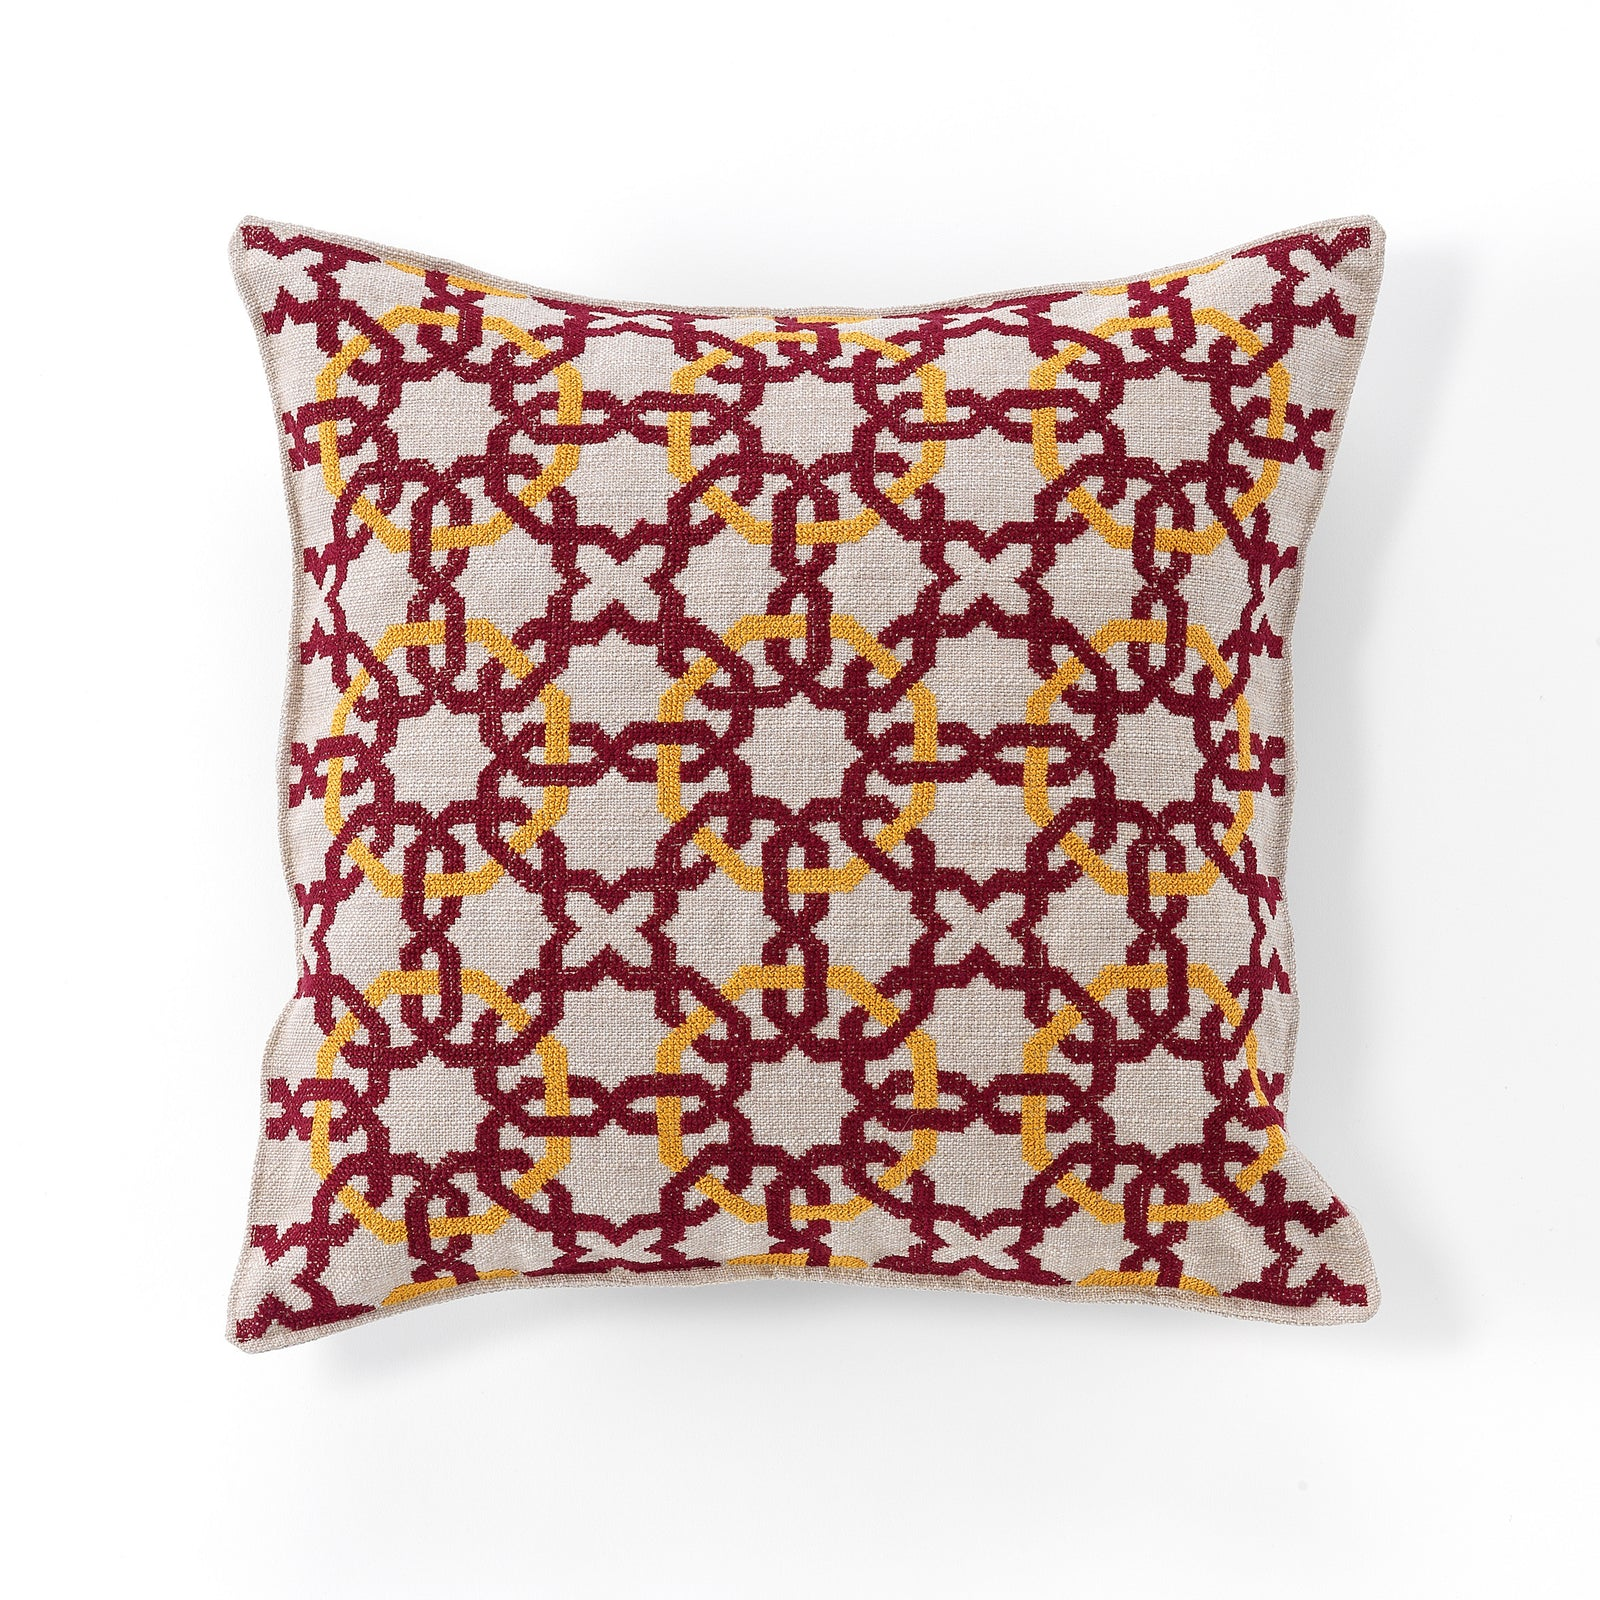 Putrajaya® Embroidered Cushion Cover